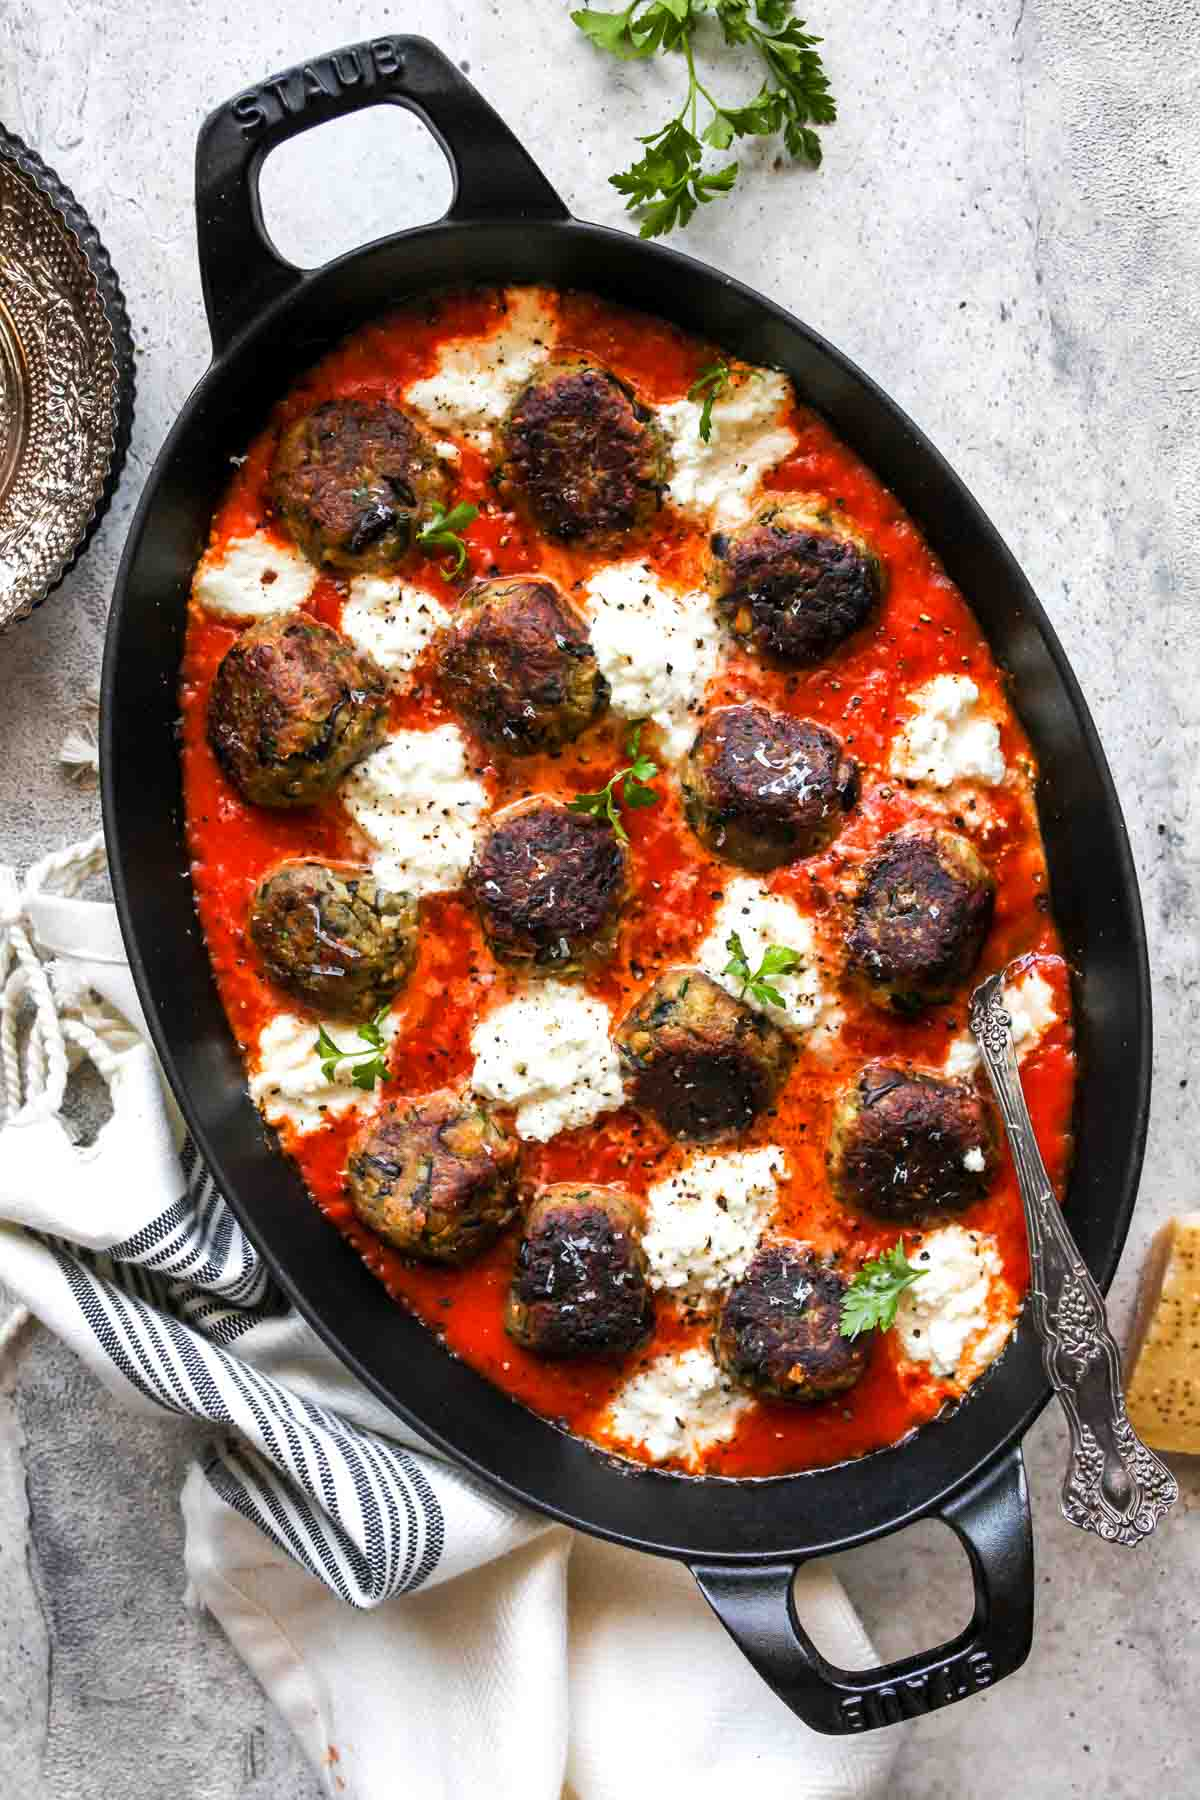 Vegetarian meatballs in a black baking pan with marinara sauce and ricotta